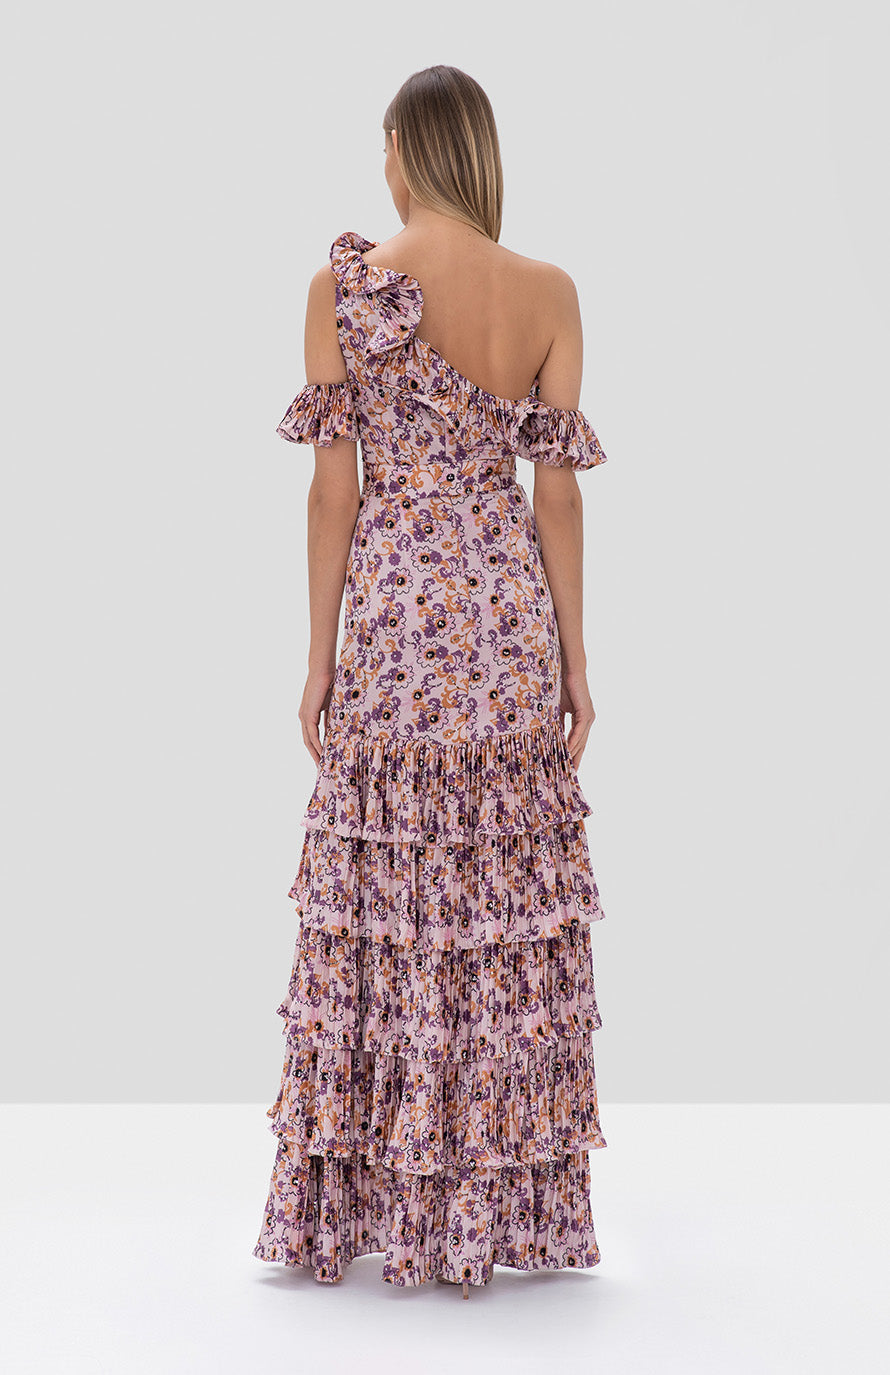 Alexis Amonda Dress in Lilac Beaded Floral - Rear View